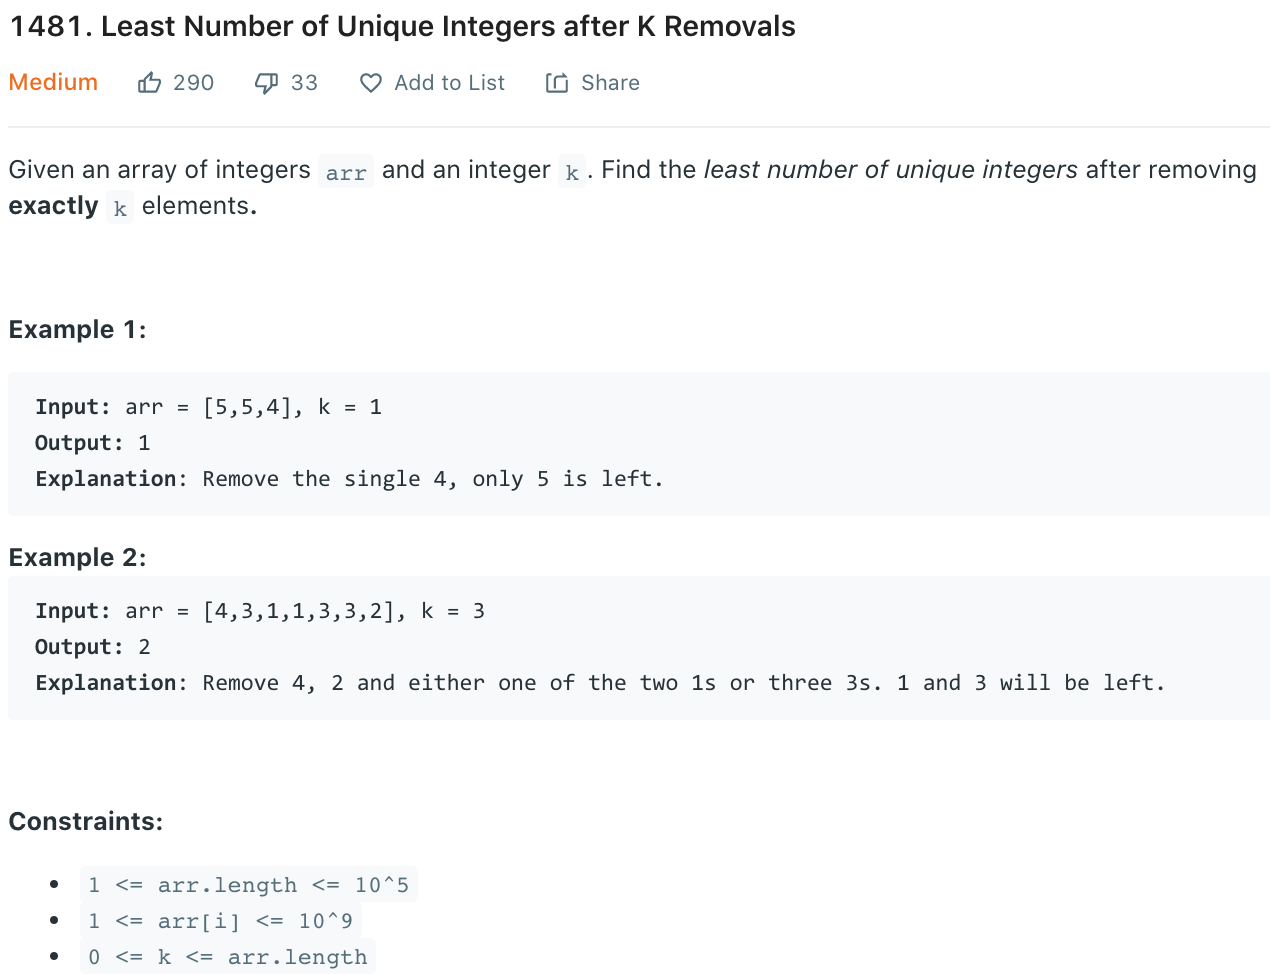 Least Number of Unique Integers after K Removals